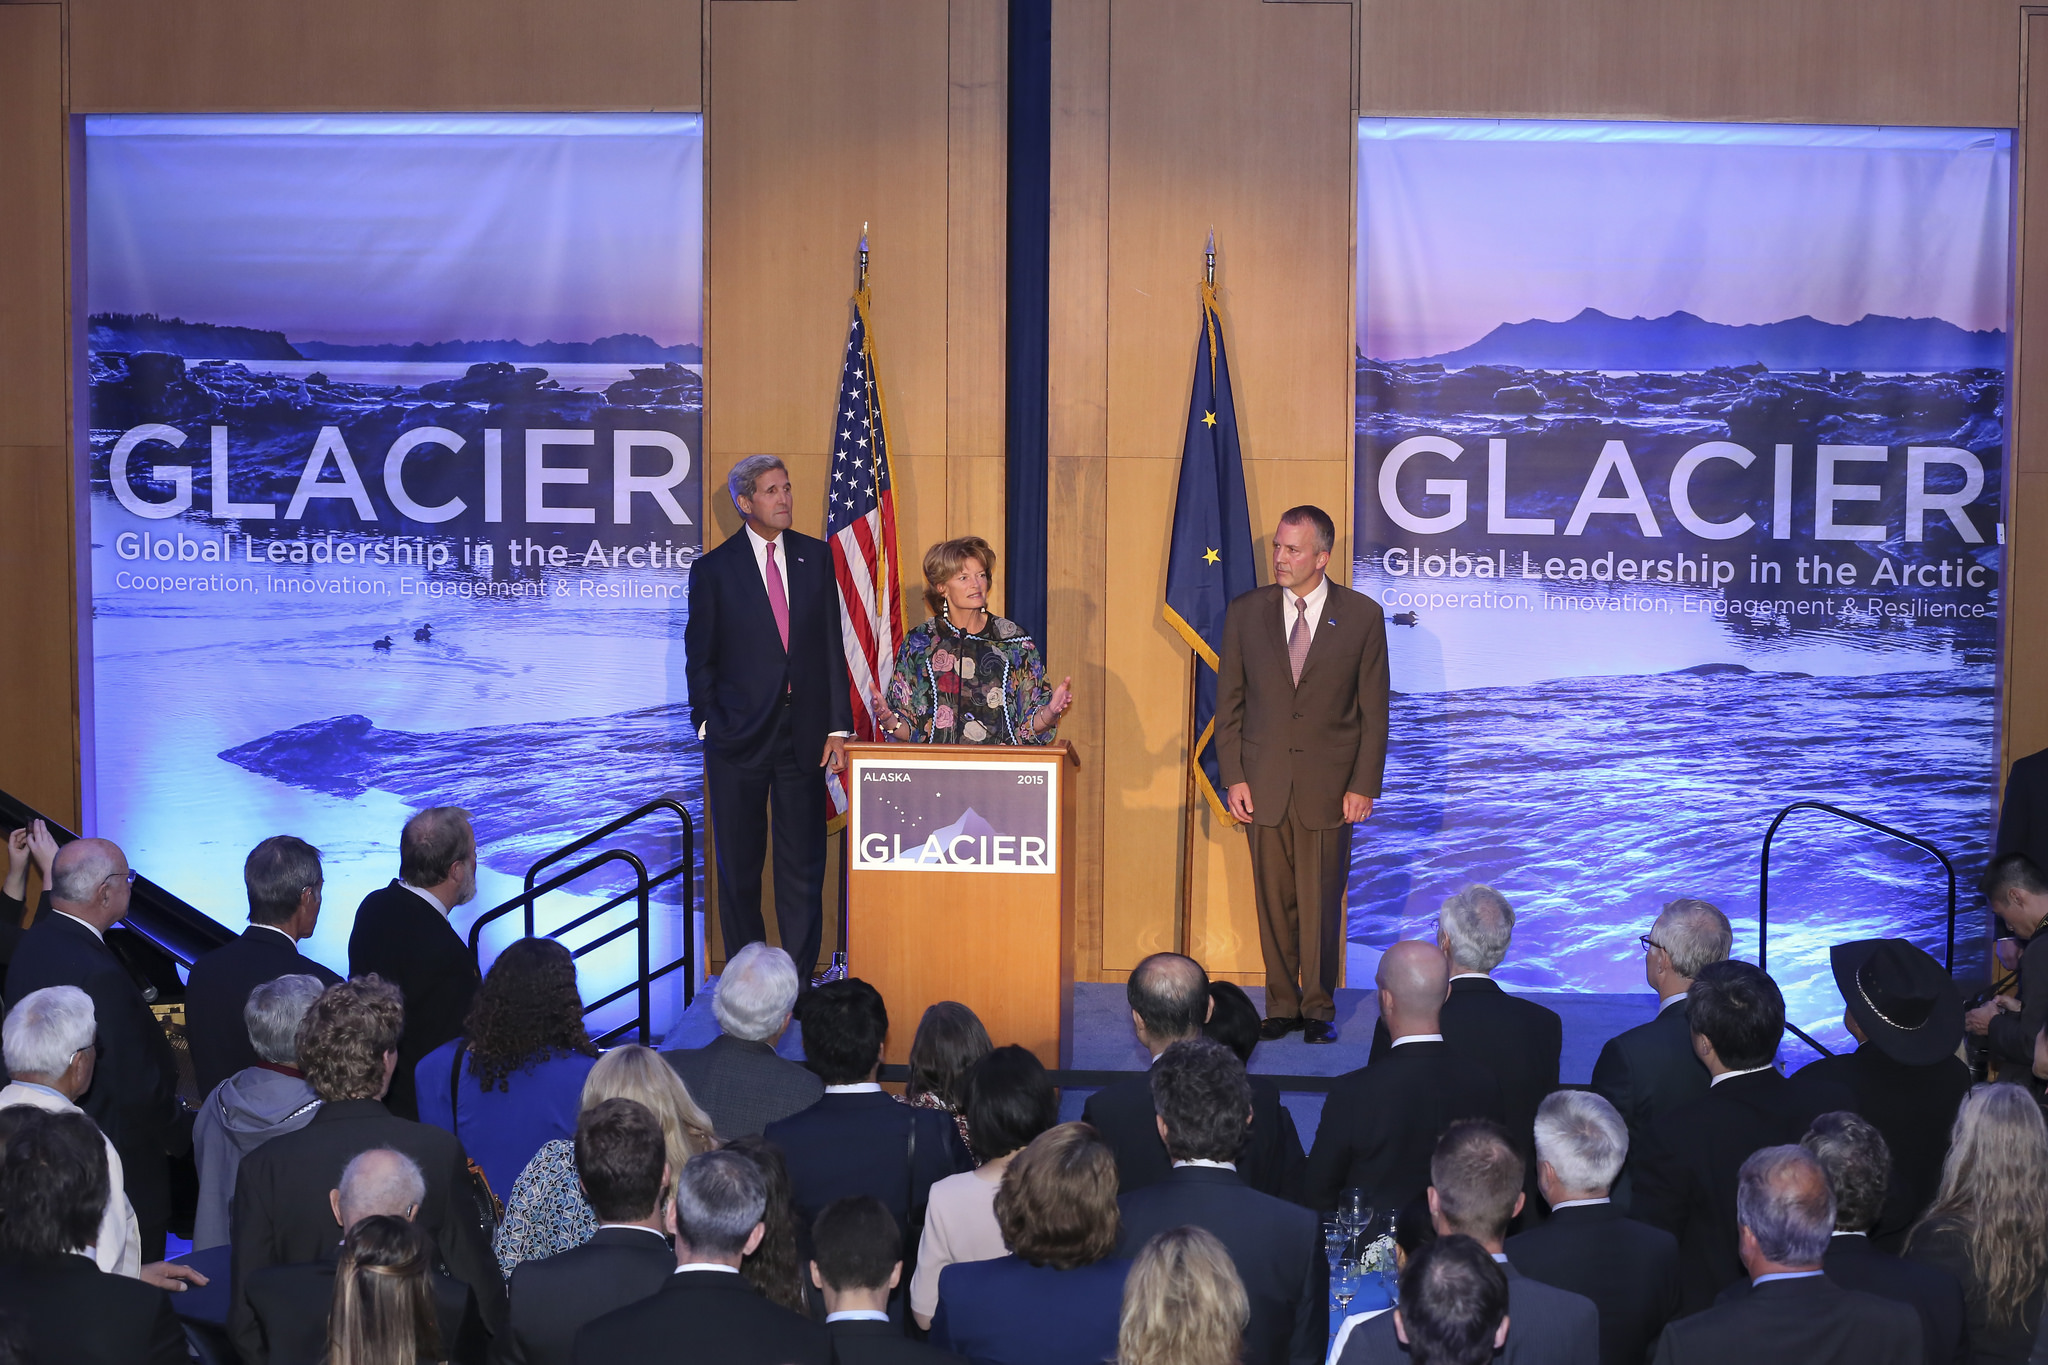 Opening reception for the GLACIER conference (Photo courtesy of State Department/Ralph Radford)